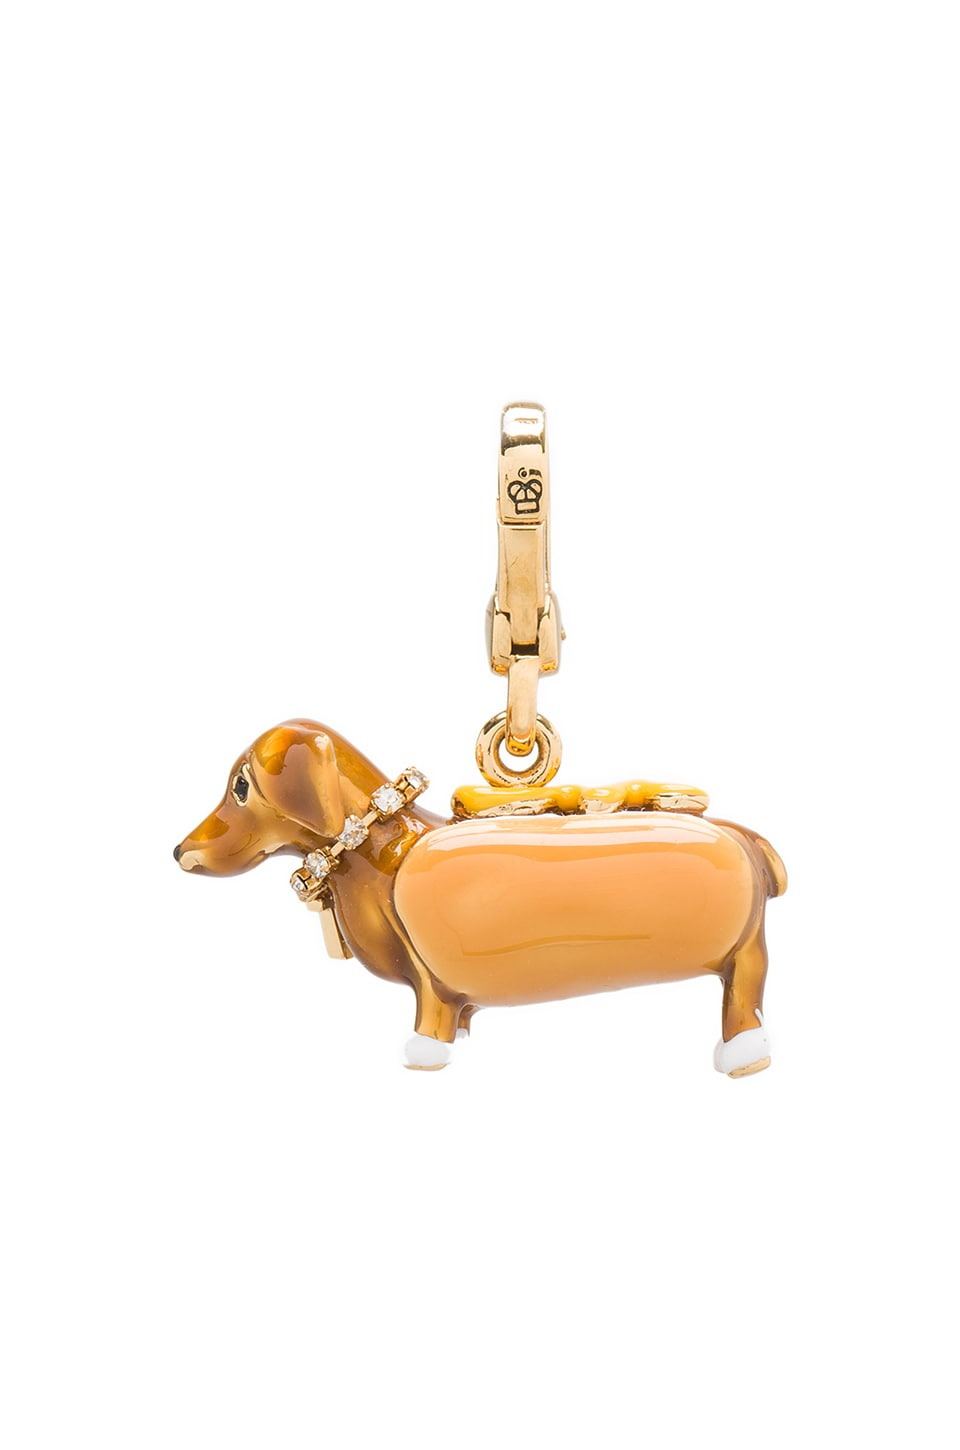 Juicy Couture Dachsund In A Hot Dog Bun Charm in Gold